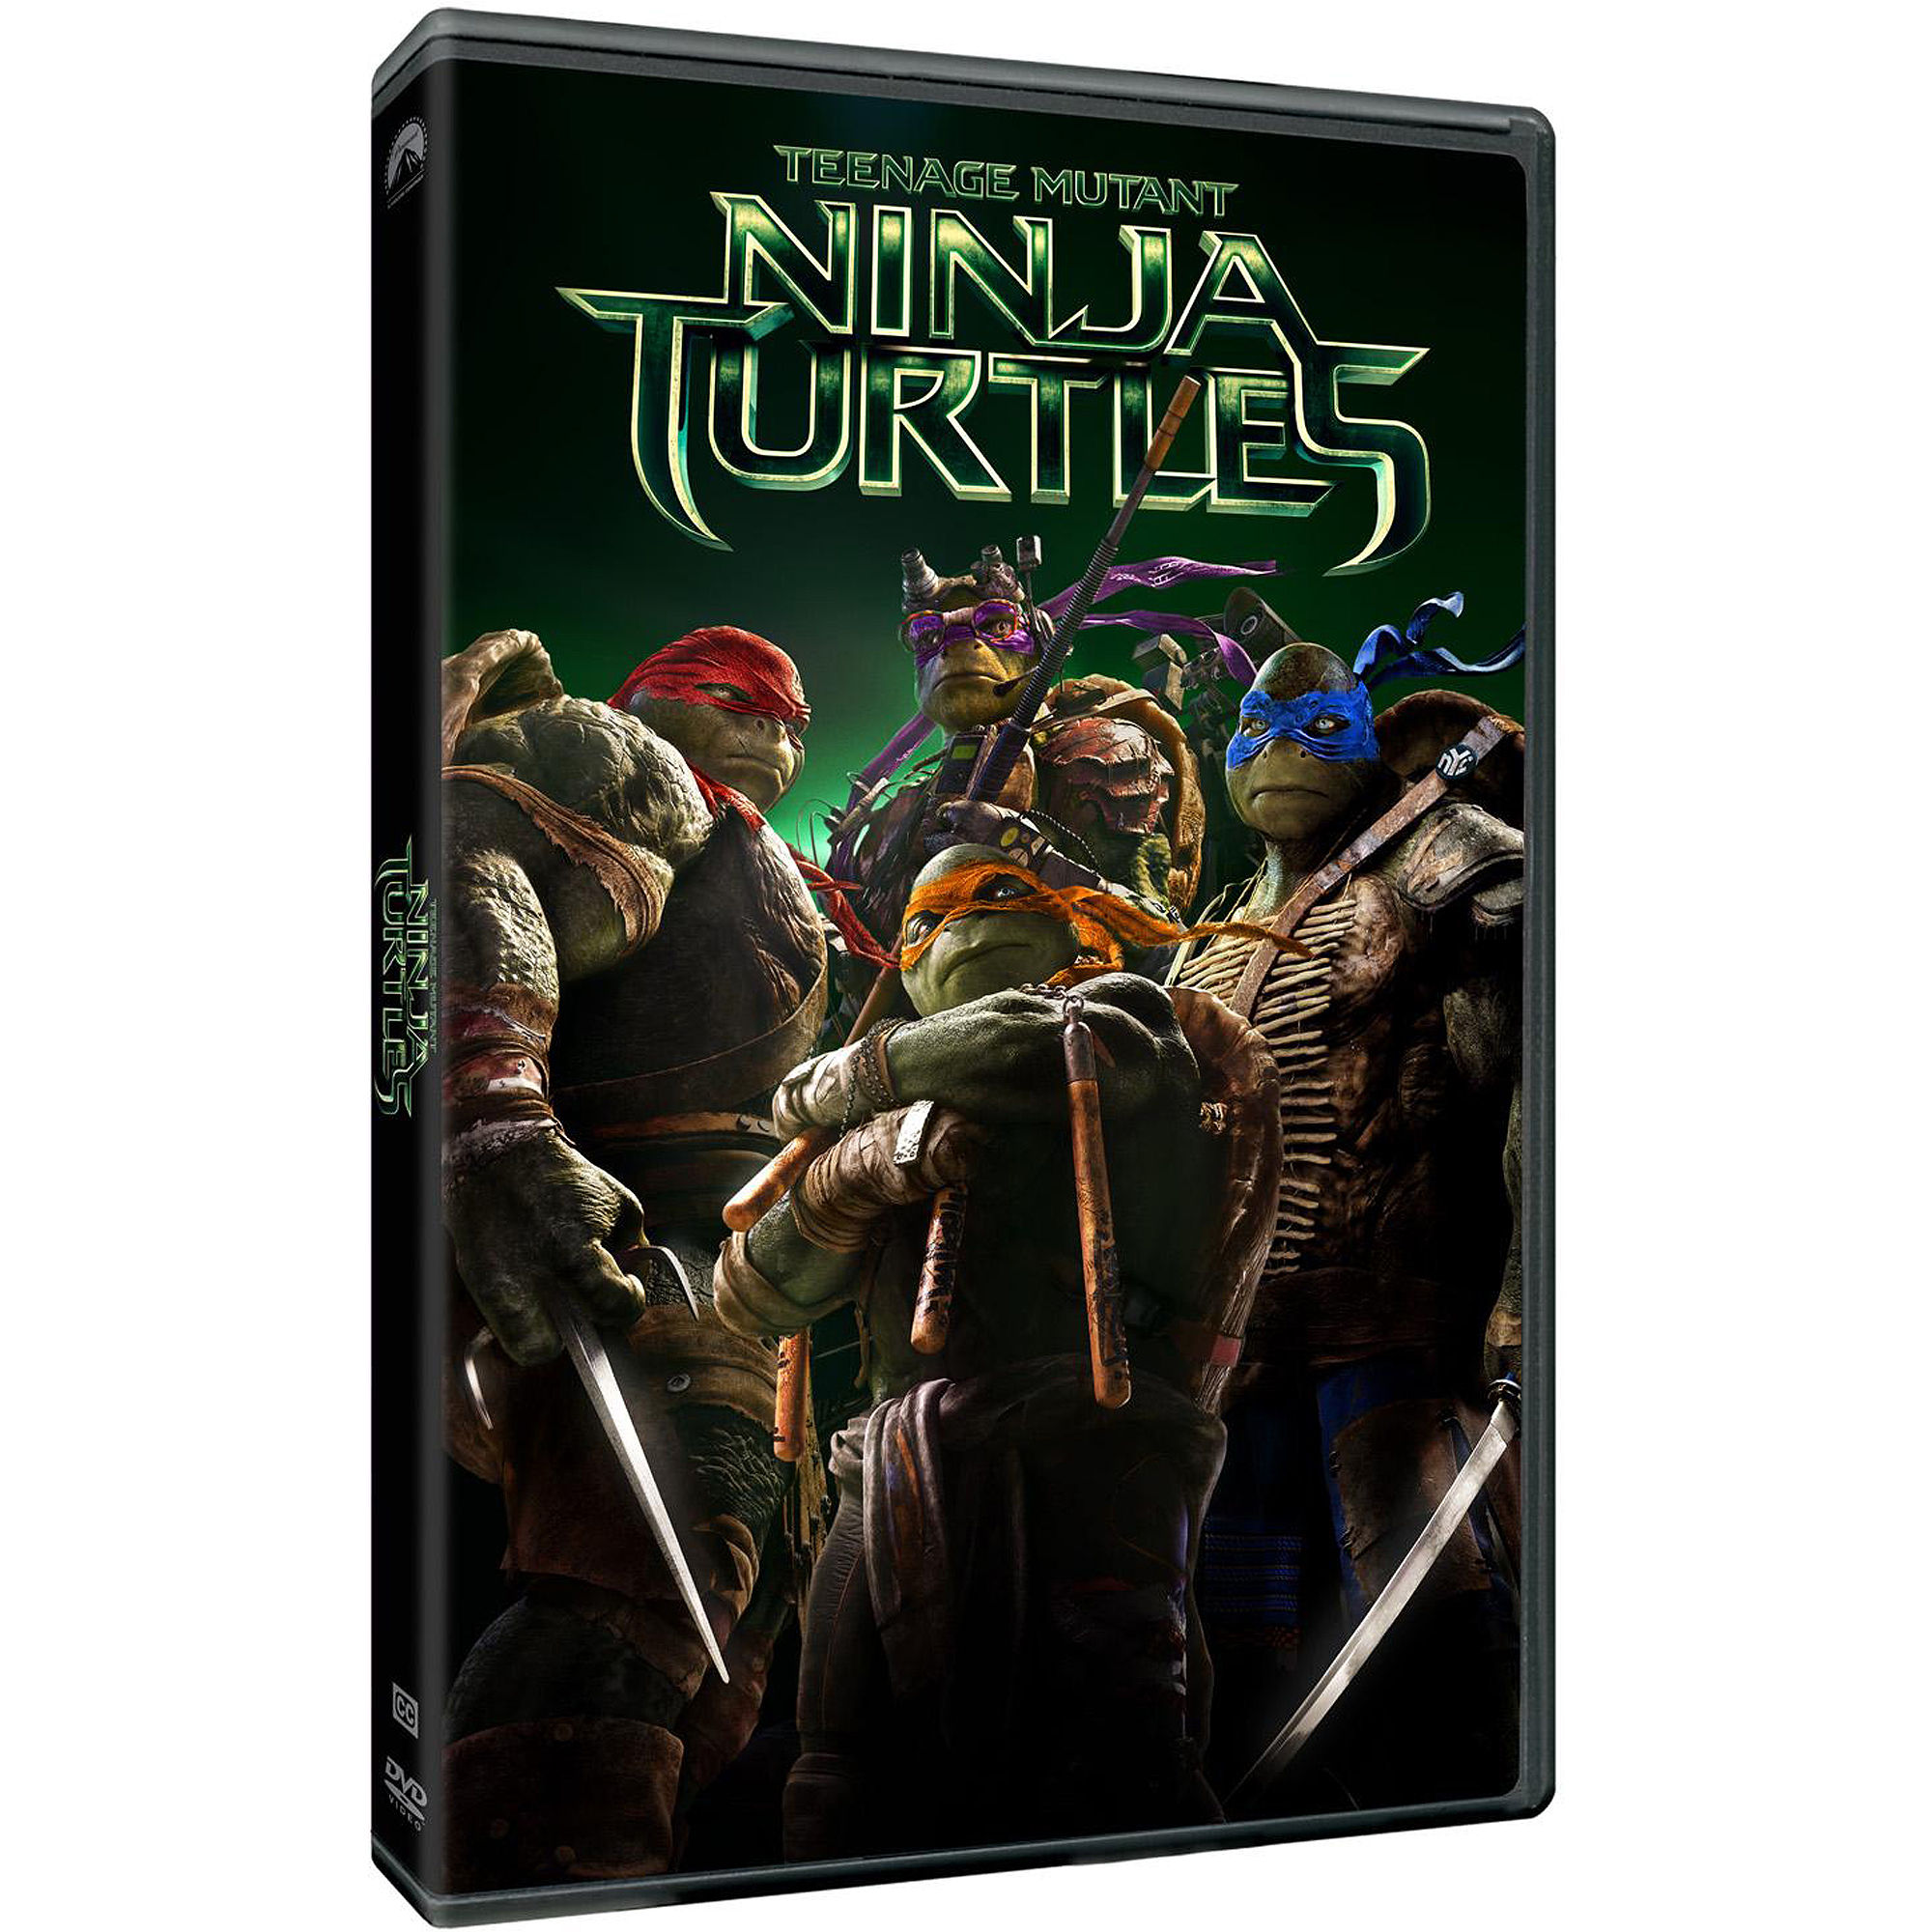 Teenage Mutant Ninja Turtles (2014) (DVD + Digital HD) (With INSTAWATCH) (Widescreen)